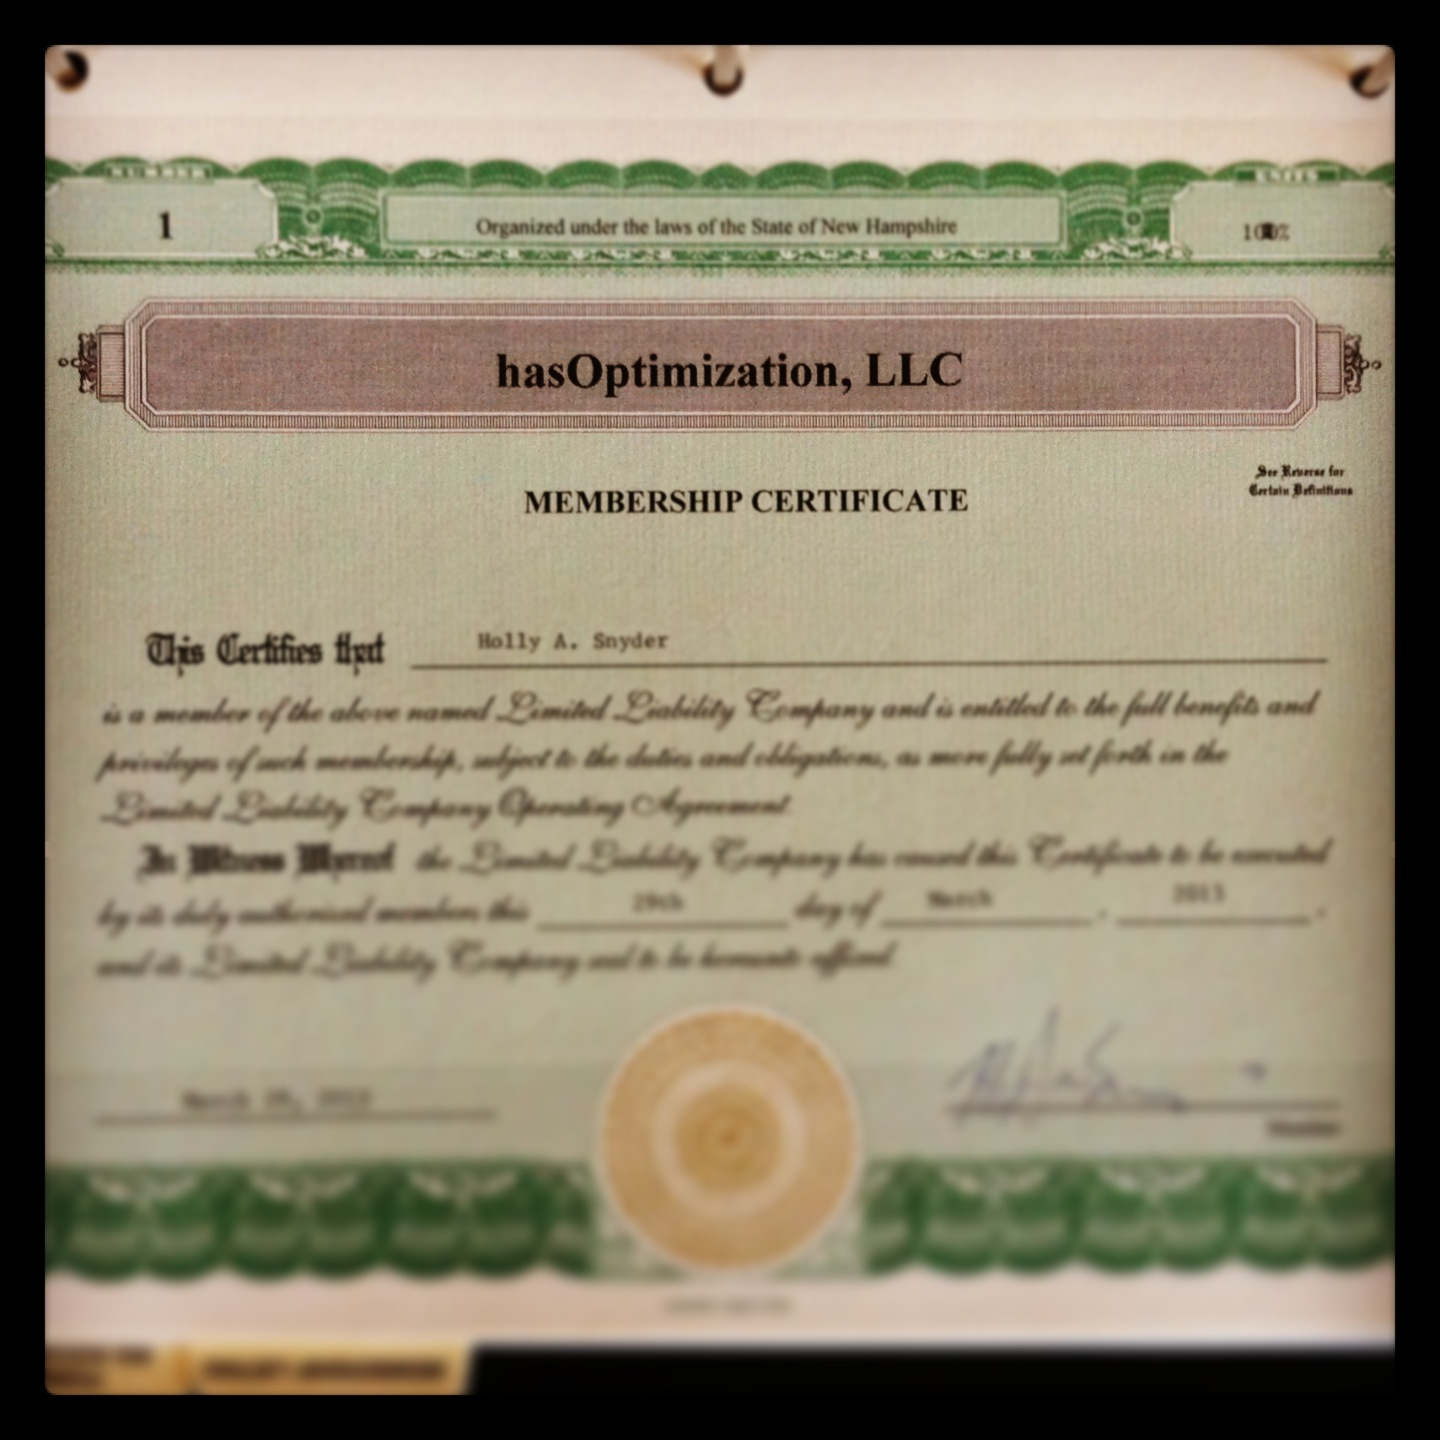 Announcing hasoptimization llc a digital marketing company hasoptimization llc membership certificate xflitez Gallery